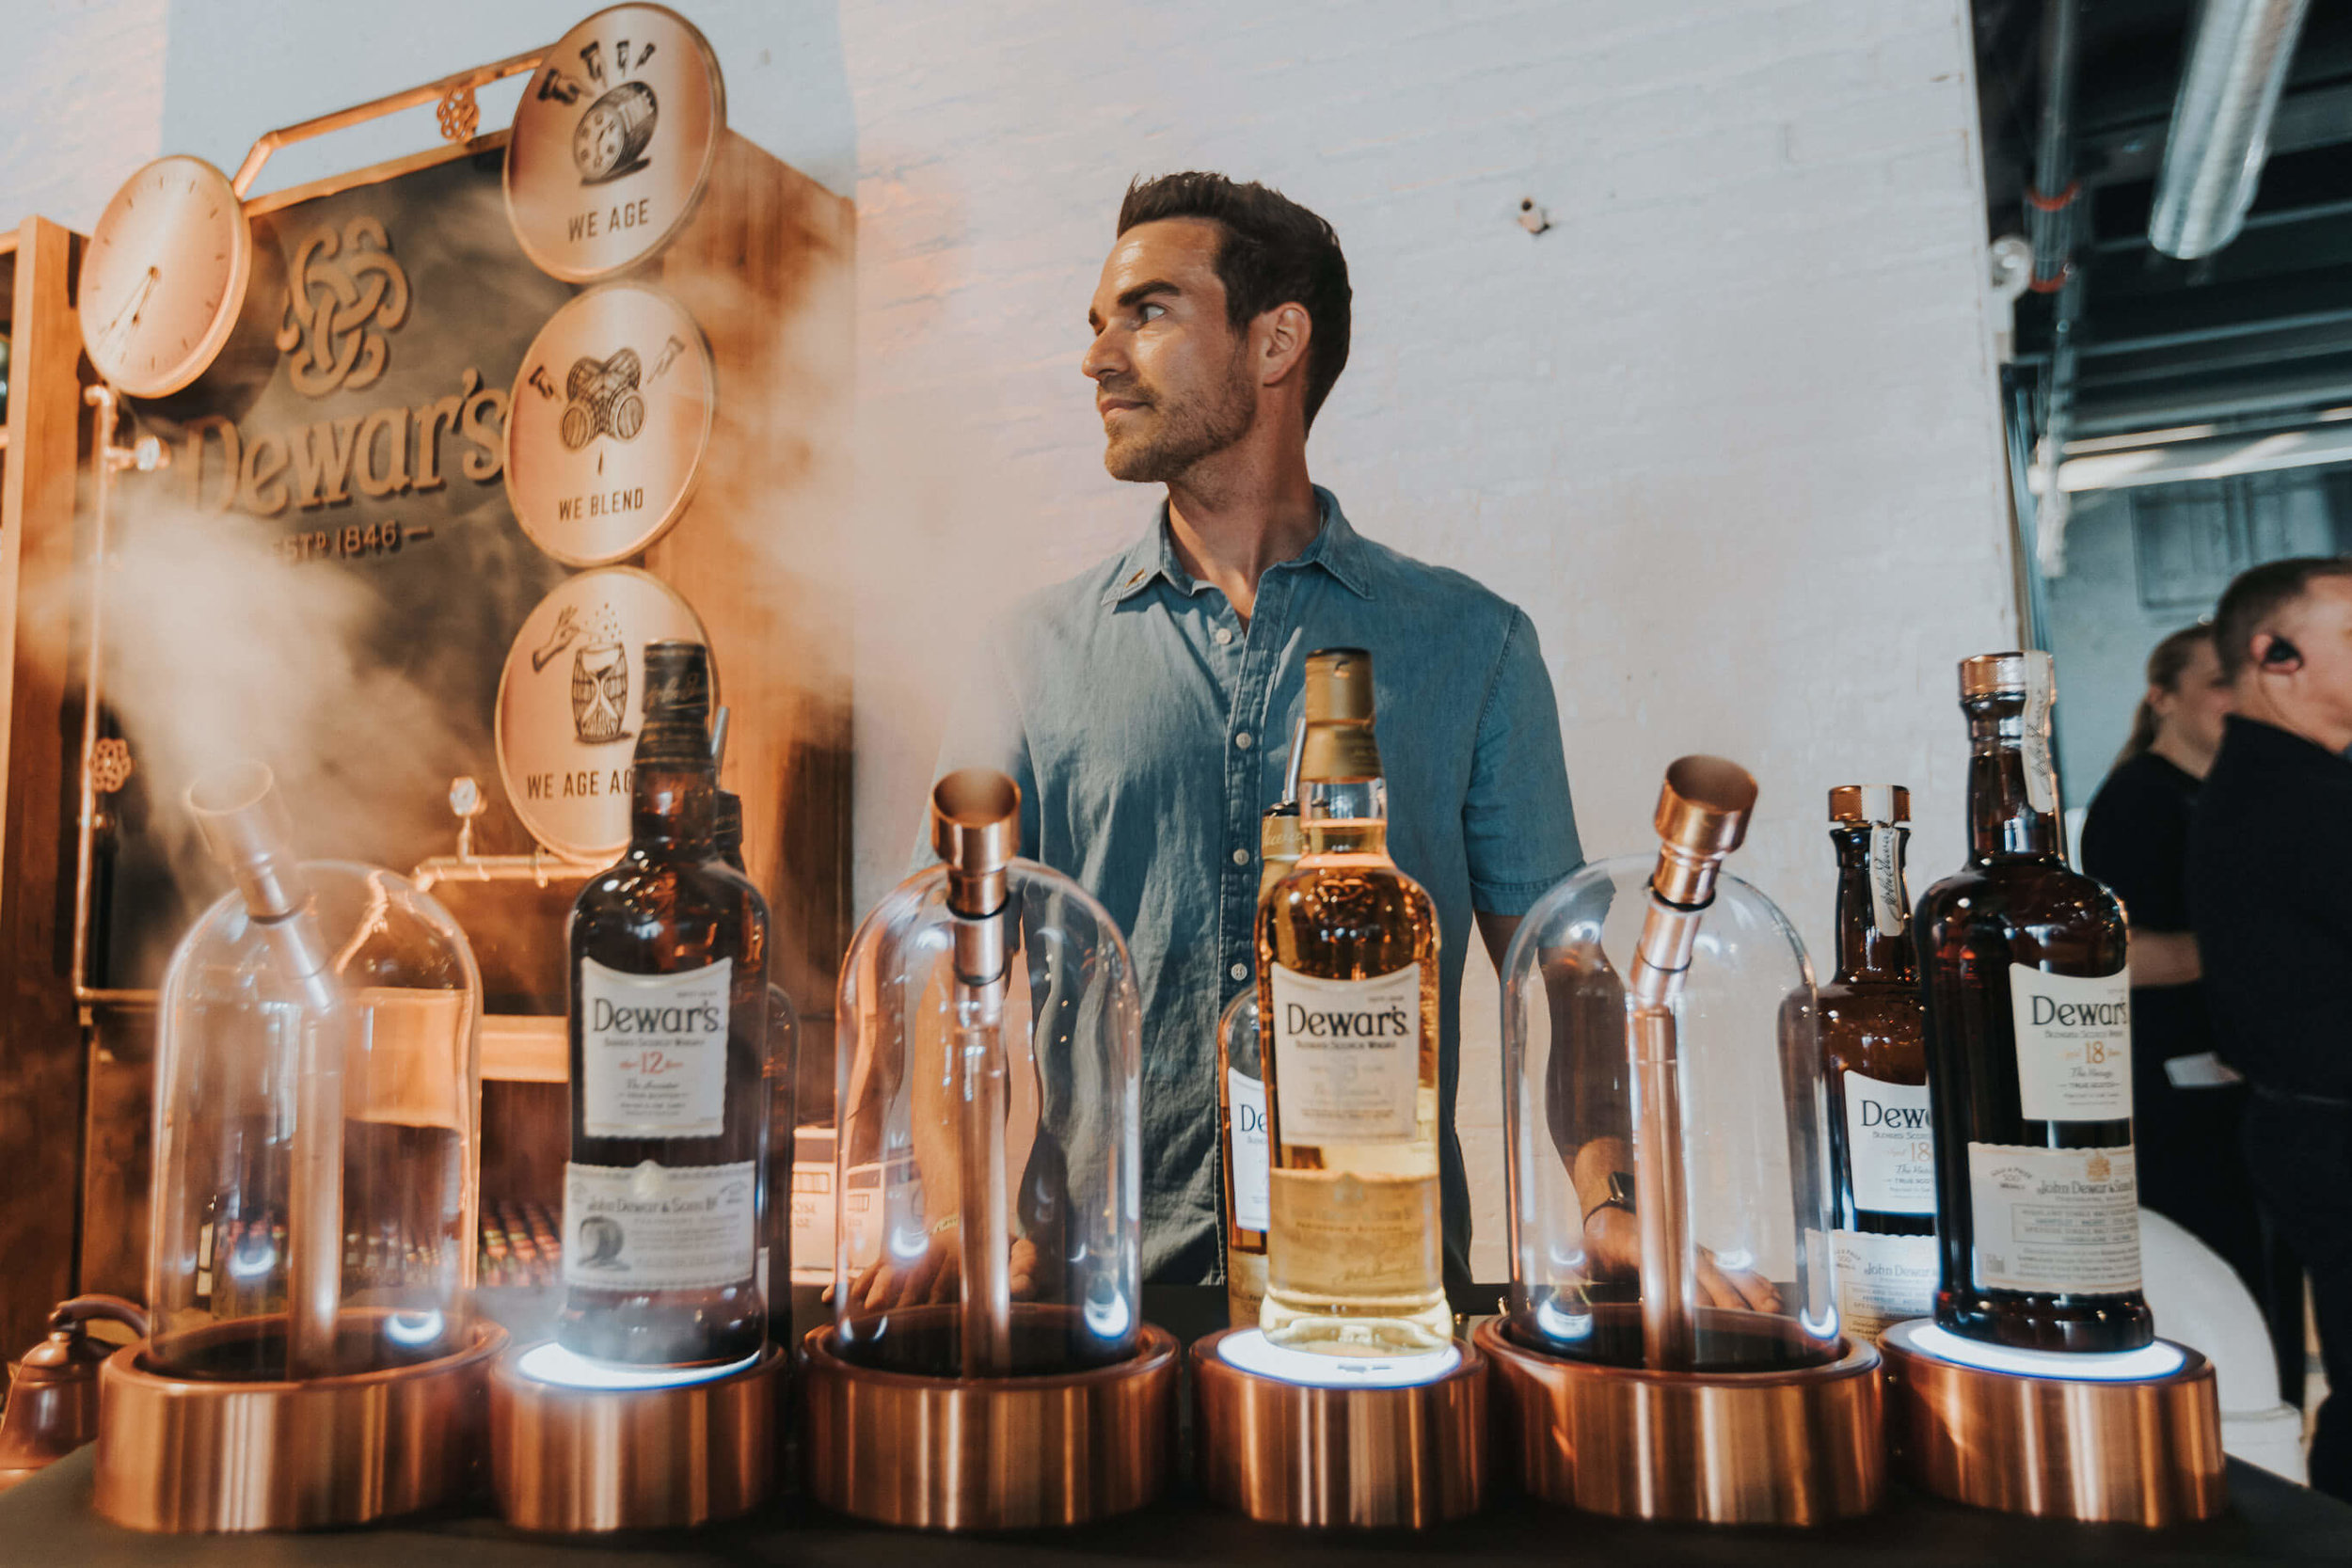 Chicago Event Photography_The Whisky X @ Revel_14.jpg